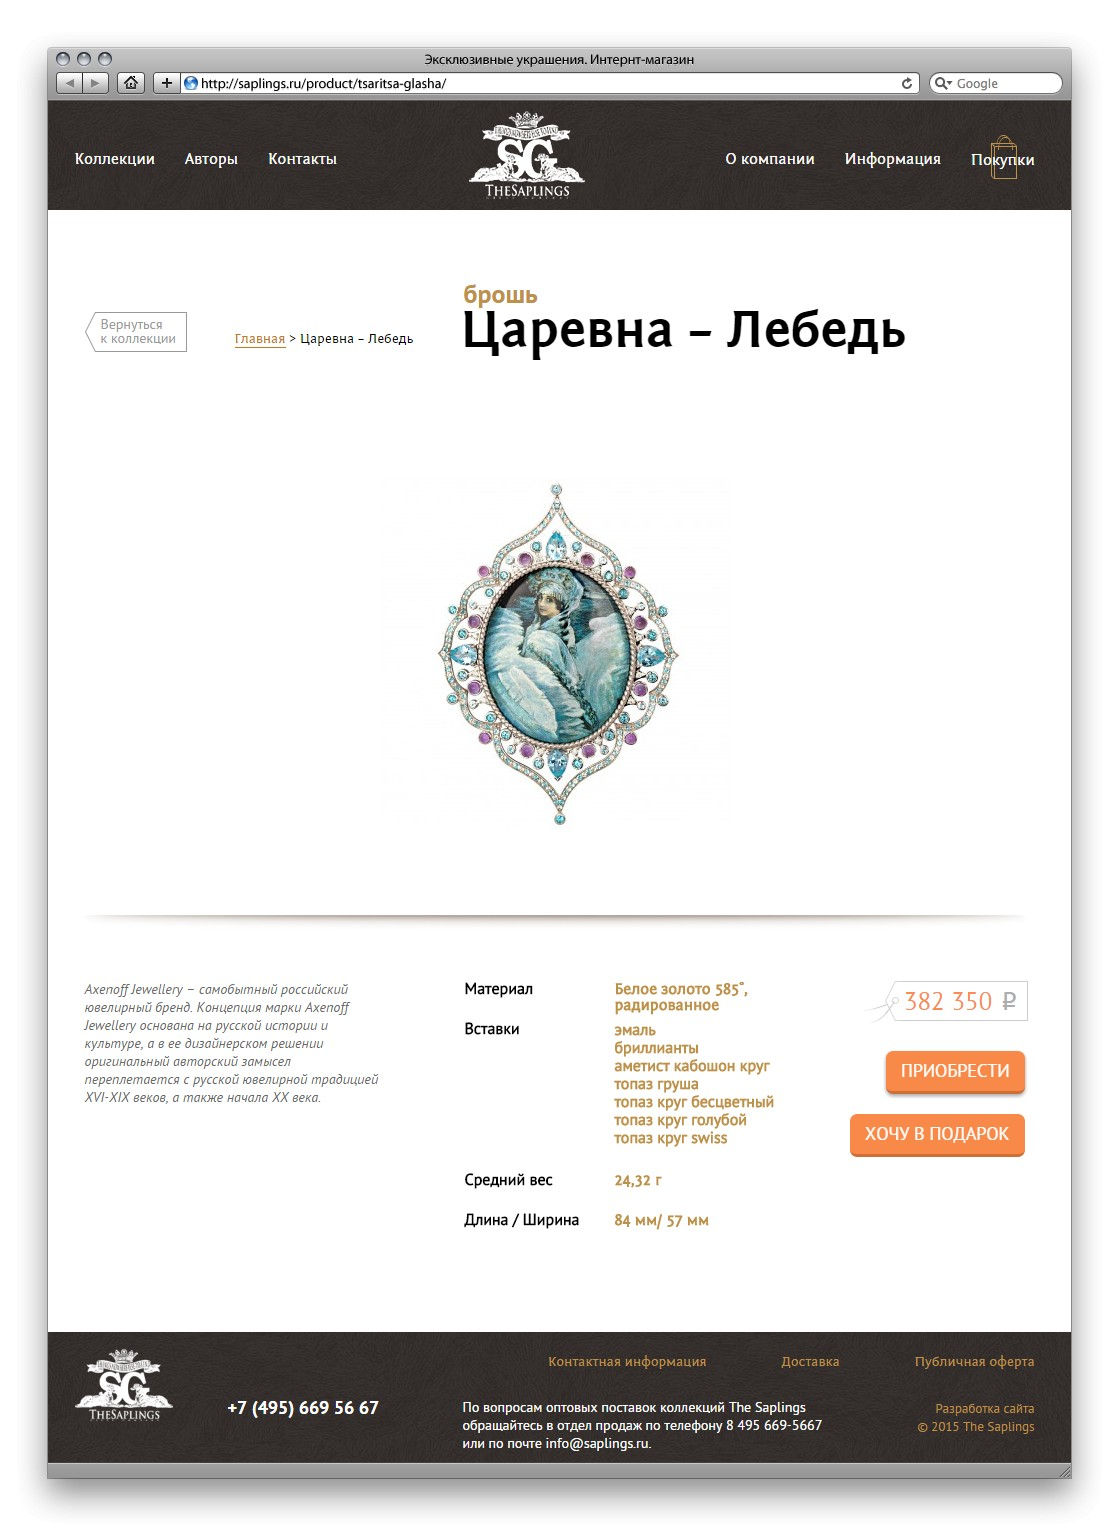 https://flagstudio.ru/wp-content/uploads/2015/03/Царевна-–-Лебедь-The-Saplings-1.jpg